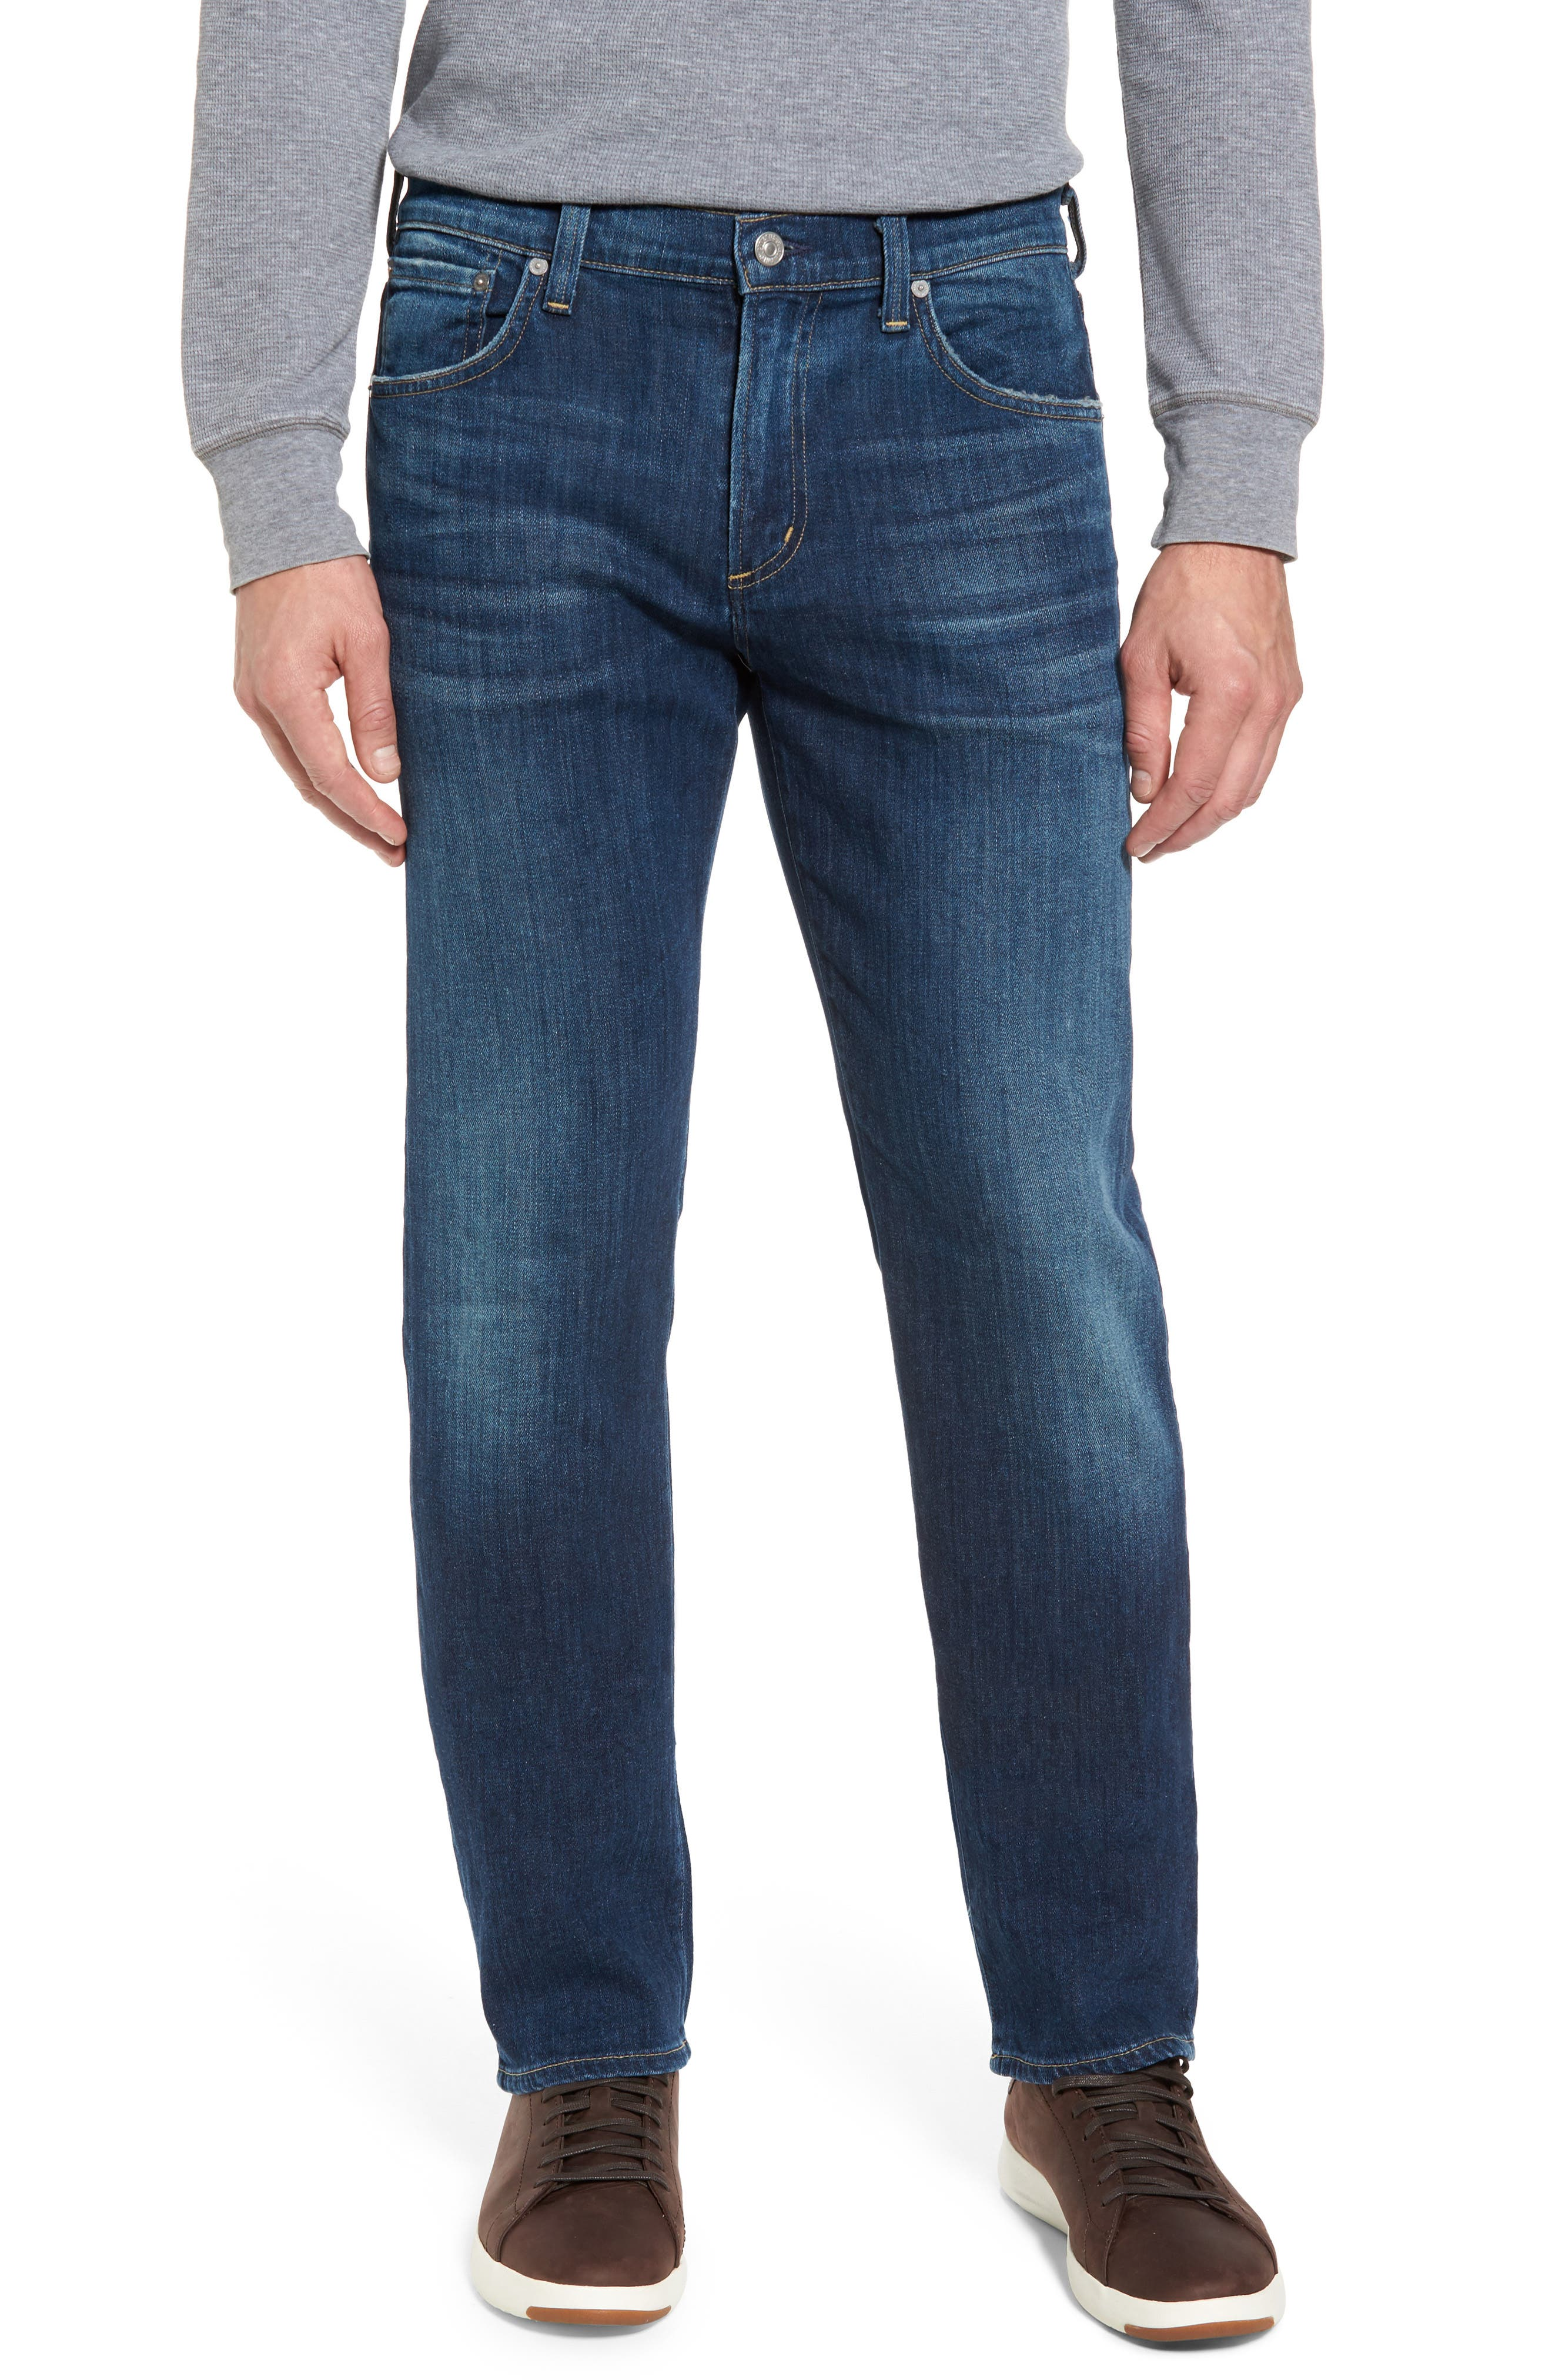 Sid Straight Fit Jeans,                         Main,                         color, 410